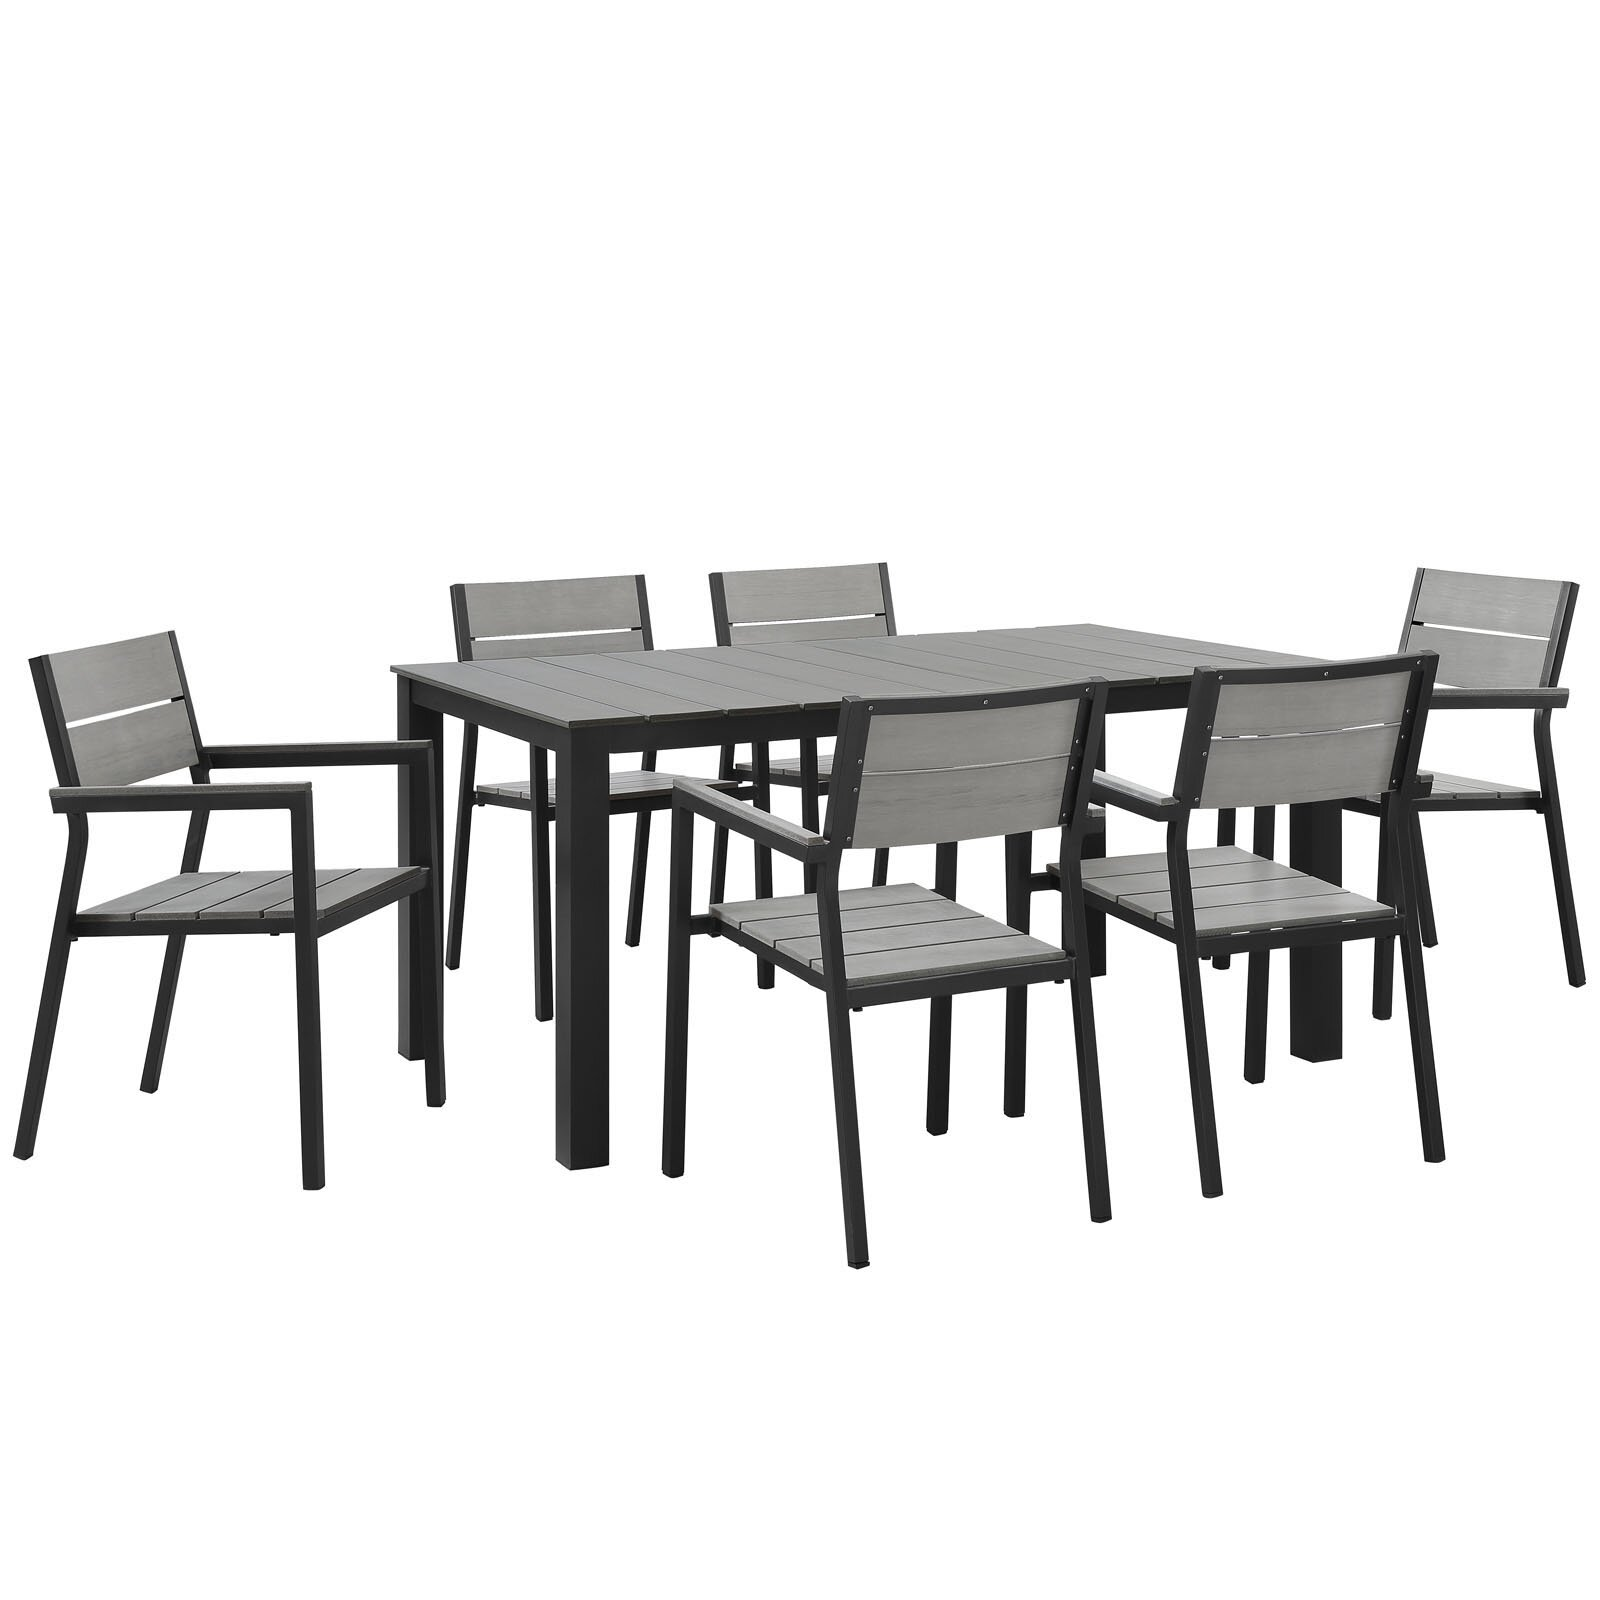 Modway maine 7 piece outdoor patio dining set reviews for Furniture 7 reviews